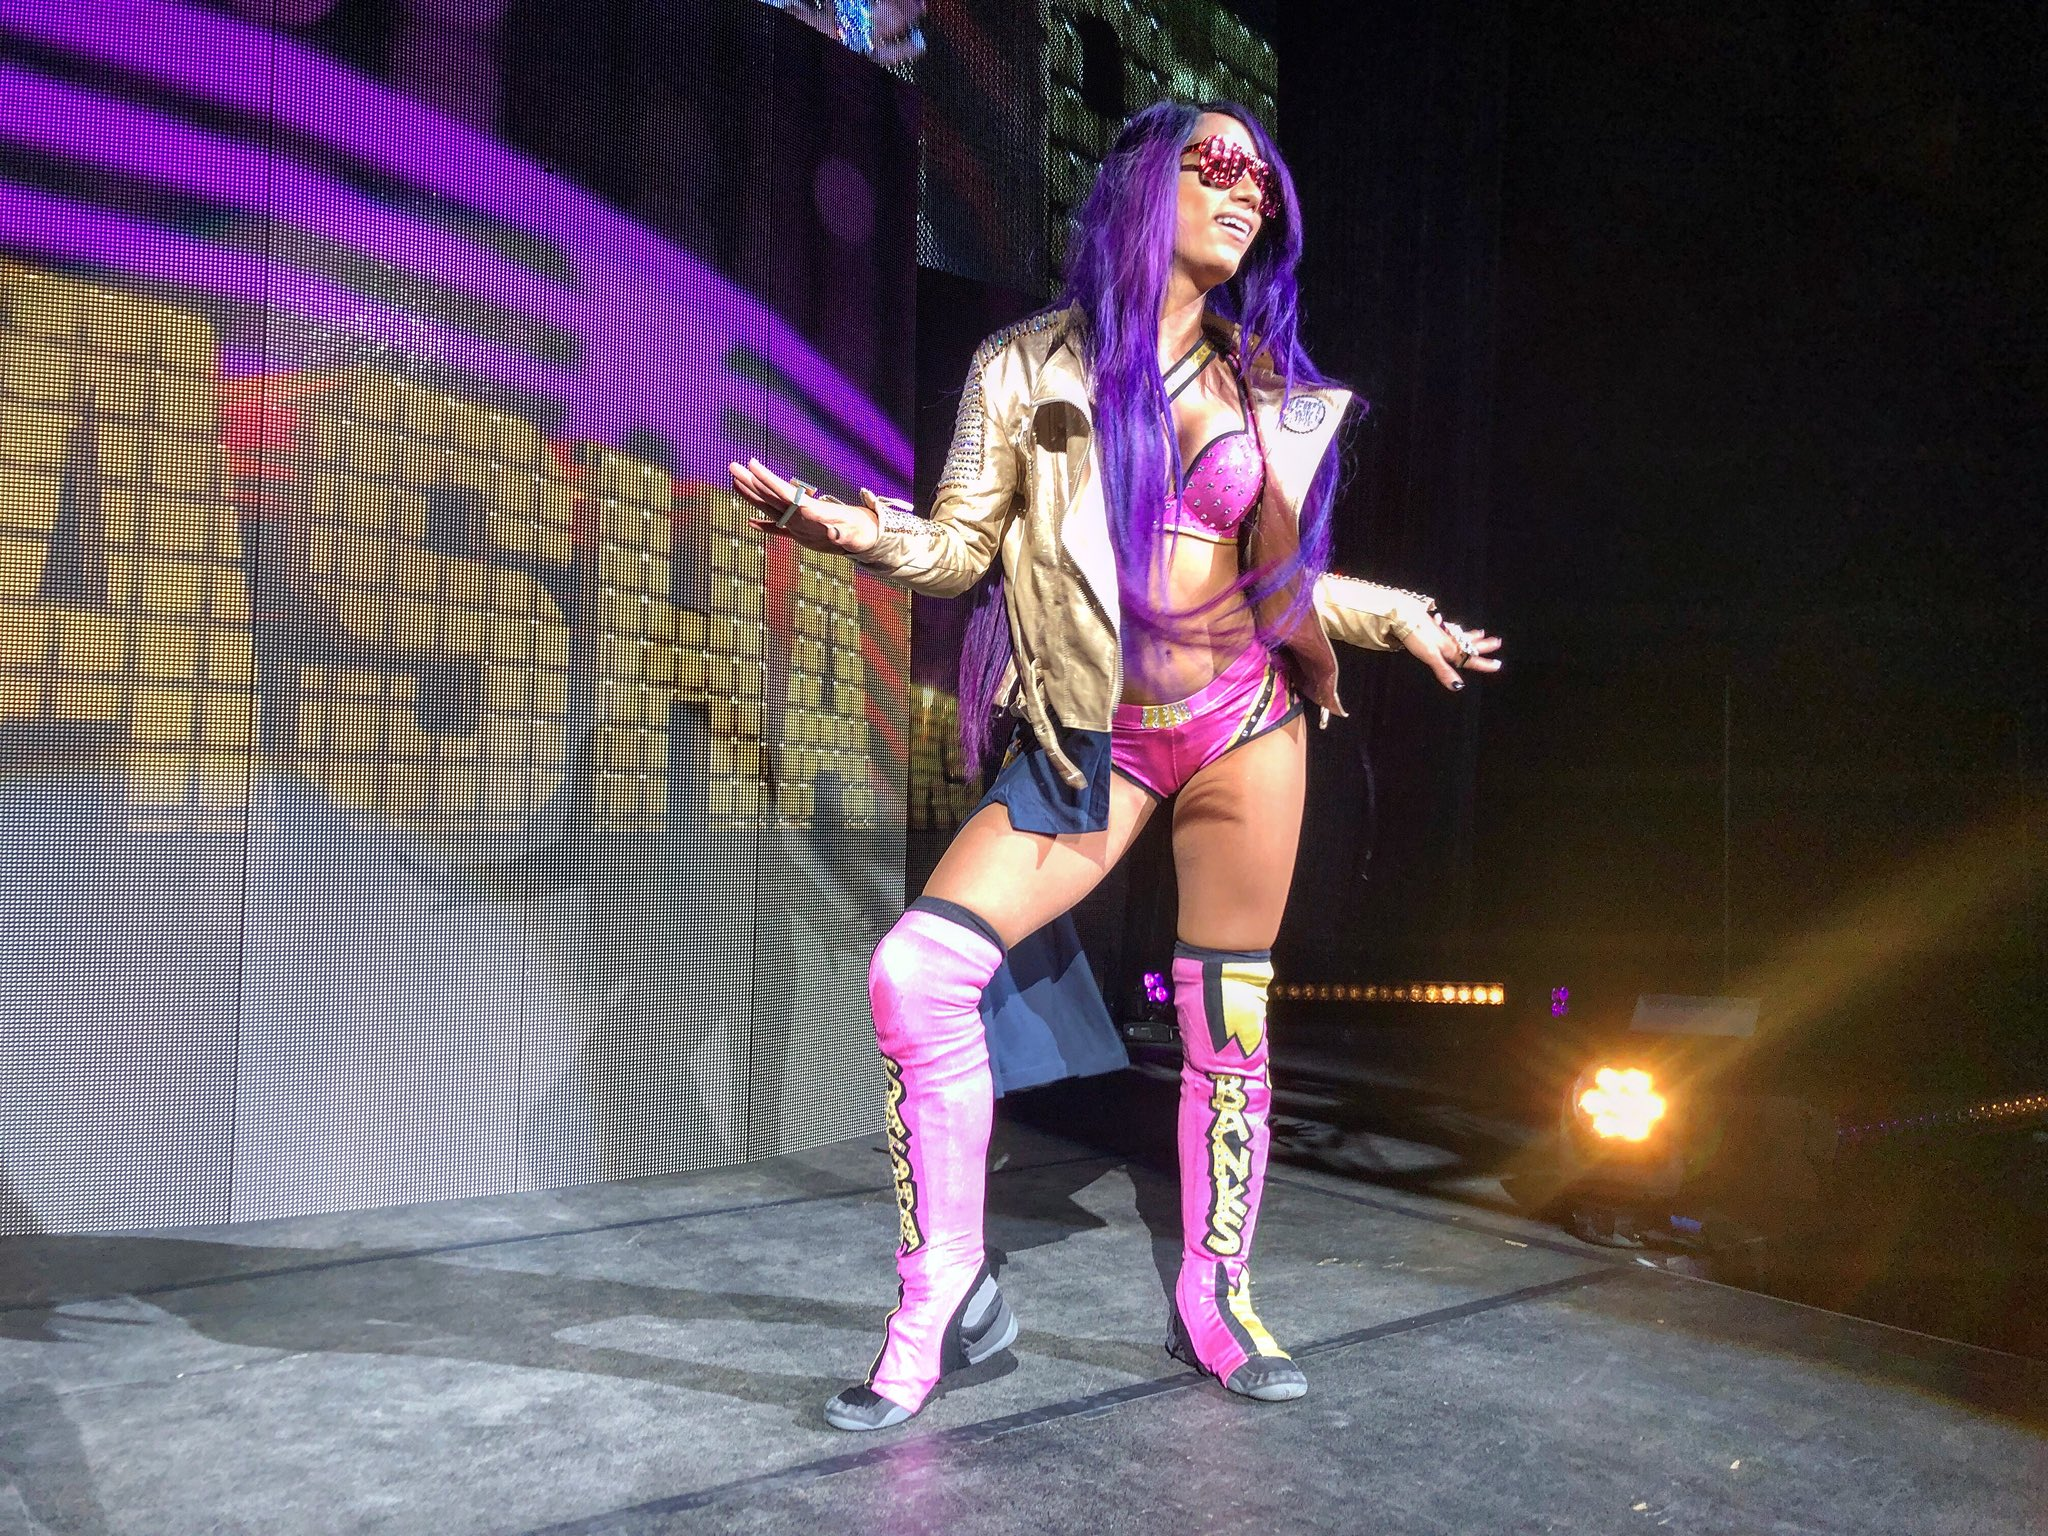 #TheBoss @SashaBanksWWE has returned home to New England to take on #WWEBangor! https://t.co/0rDilCxgI9